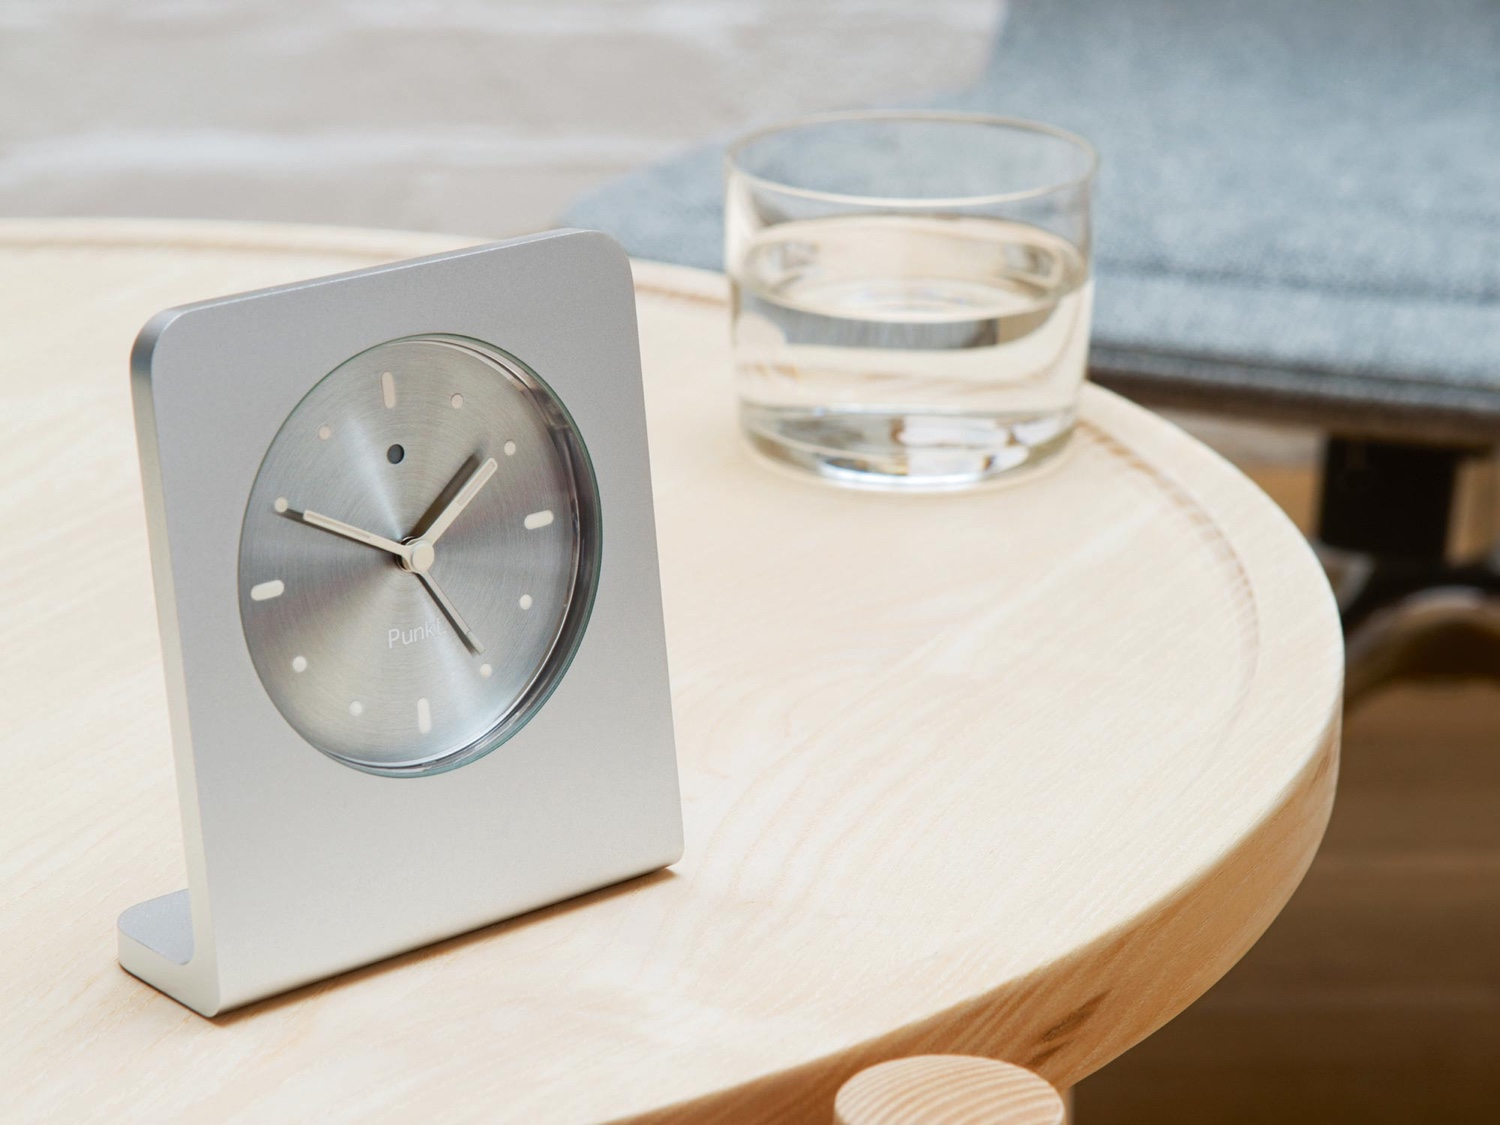 AC-01 Alarm Clock (2011). Designed for Punkt.